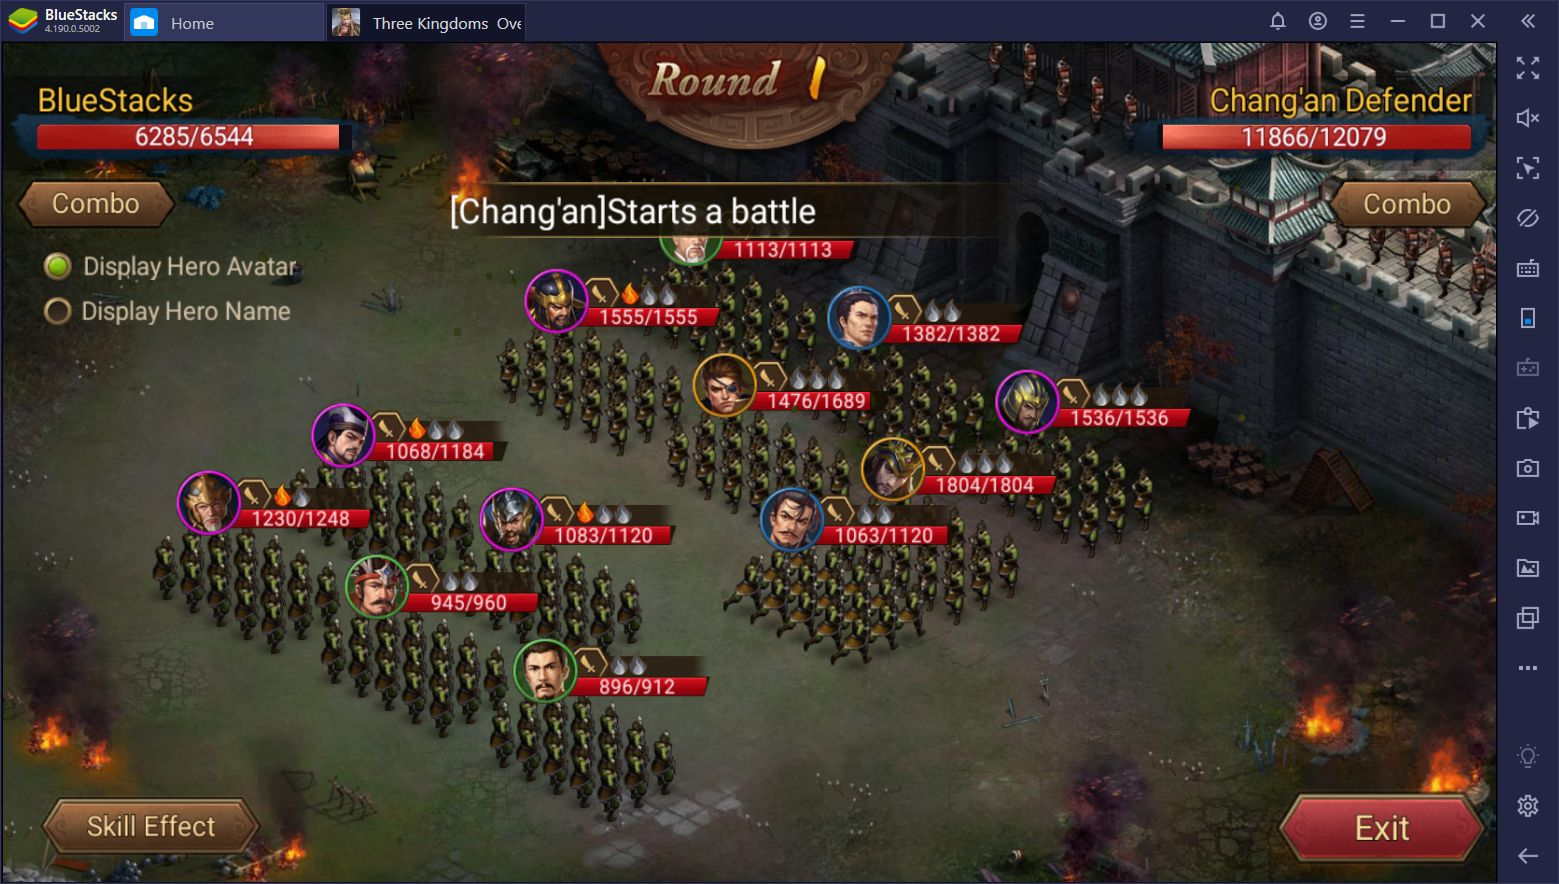 Three Kingdoms: Overlord - Beginner's Guide on Founding and Expanding Your Empire